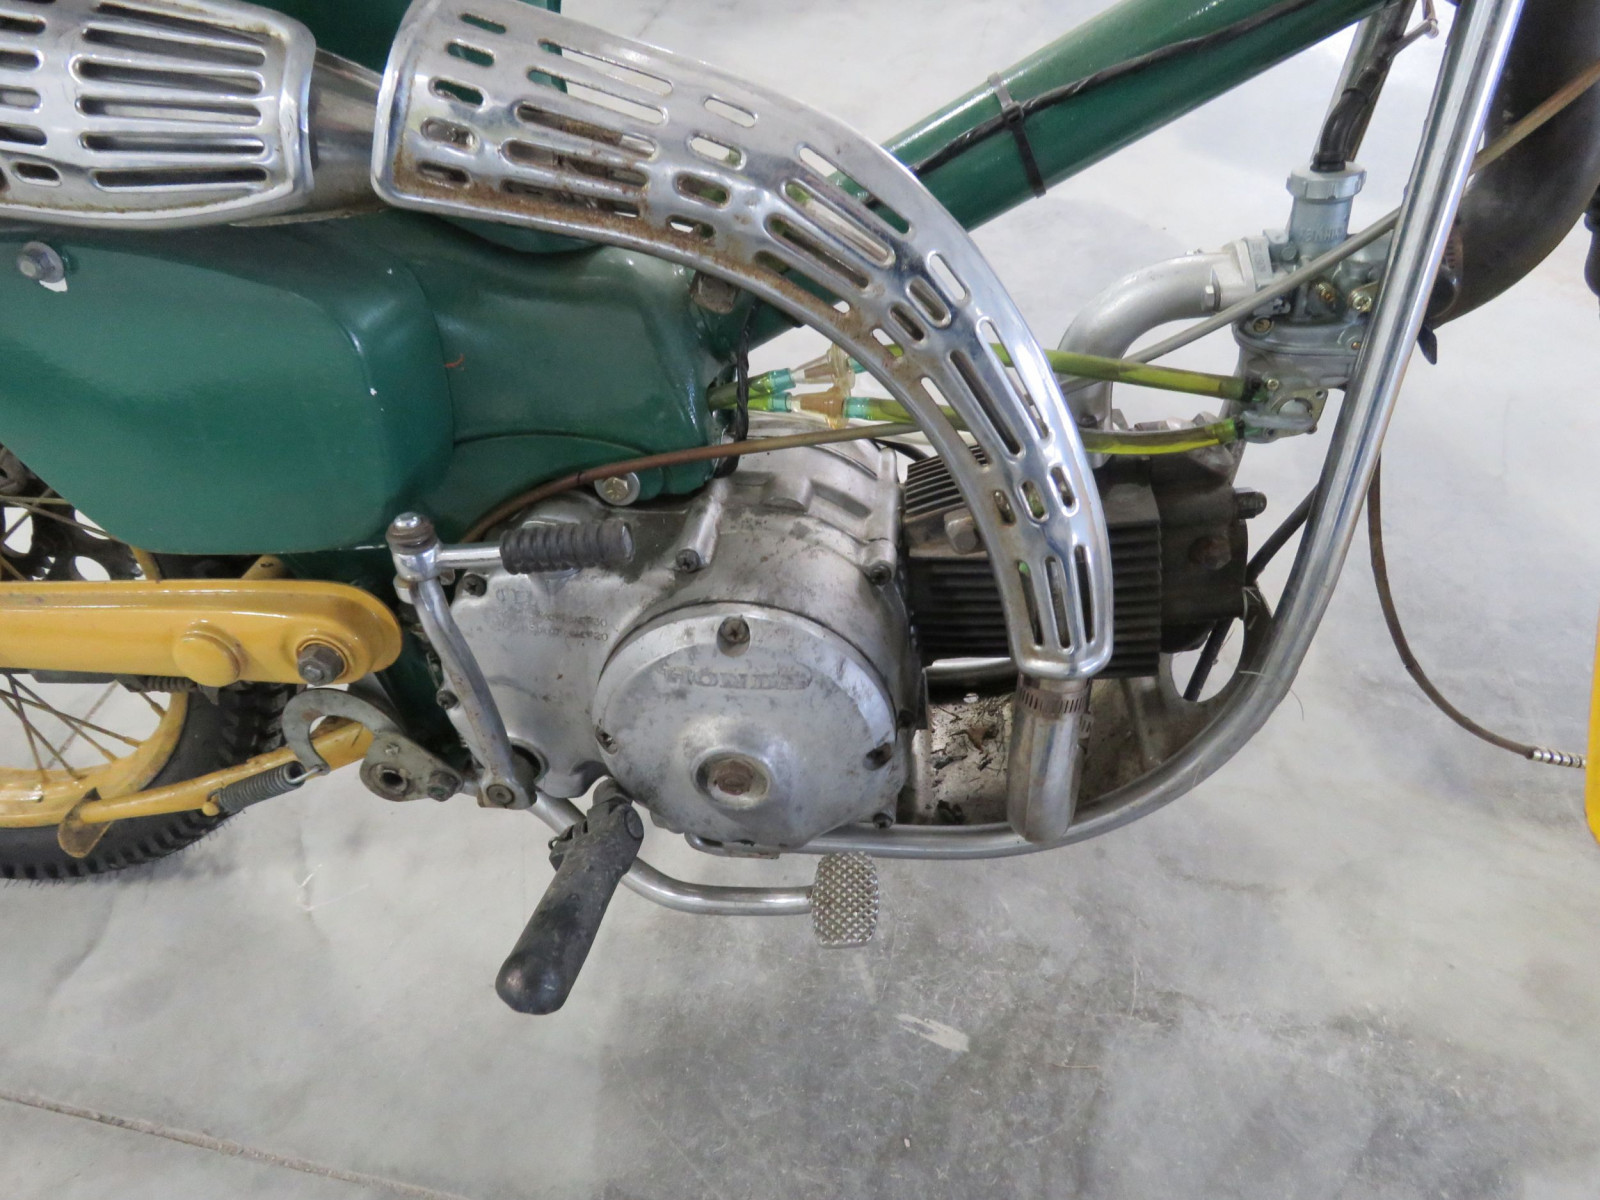 1965 Honda trail 90 Scooter - Image 4